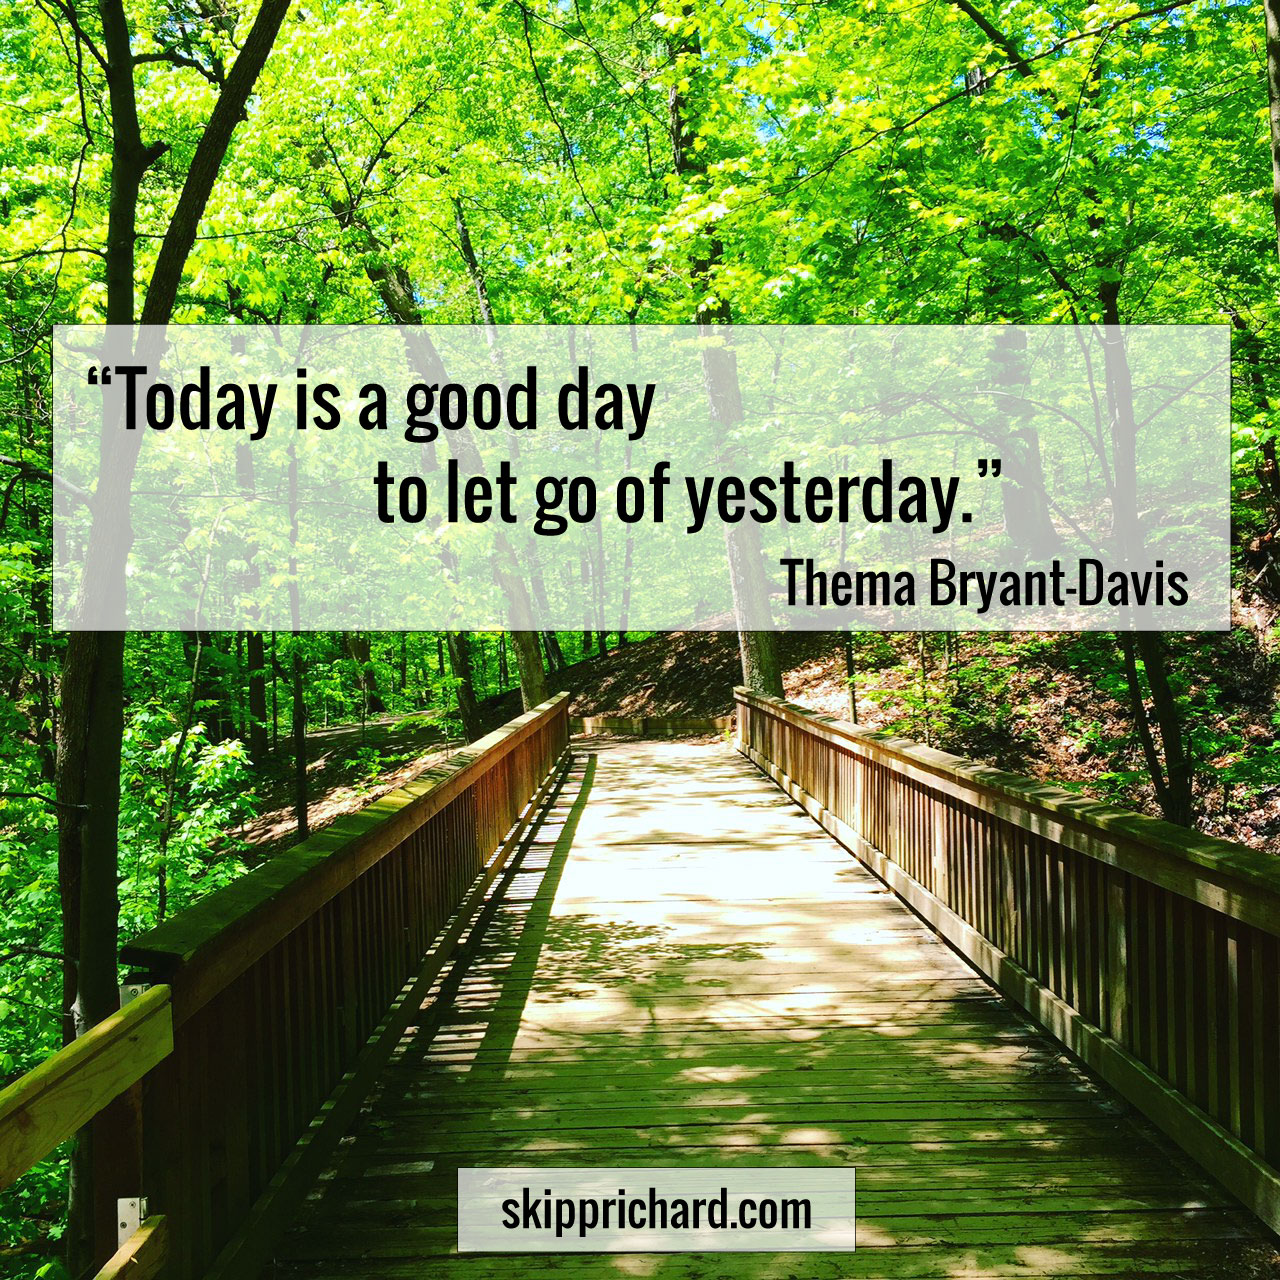 Today is a good day to let go of yesterday.